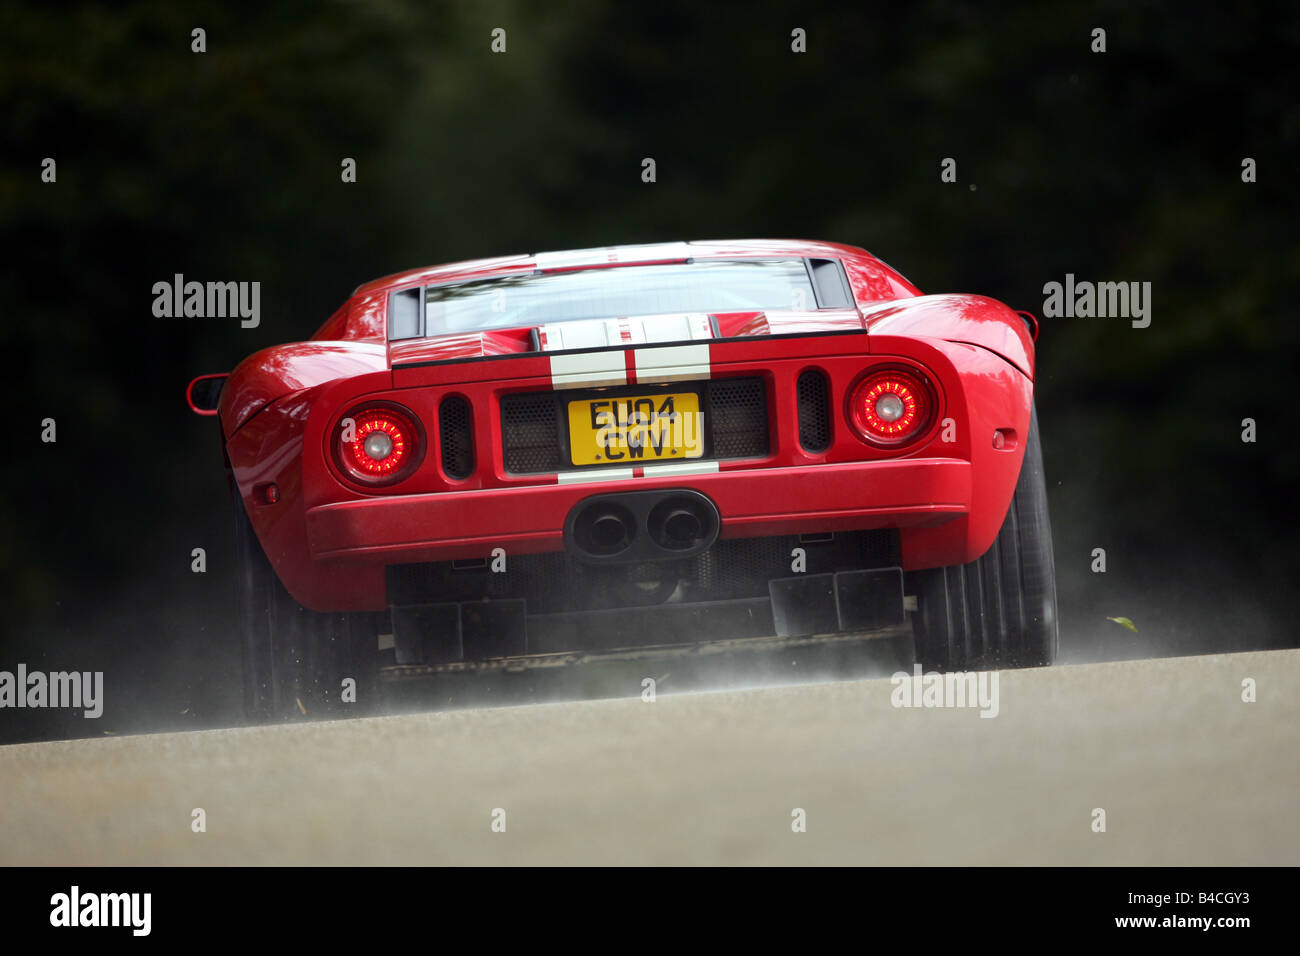 Ford Gt Model Year  White Red Driving Diagonal From The Back Rear View Country Road